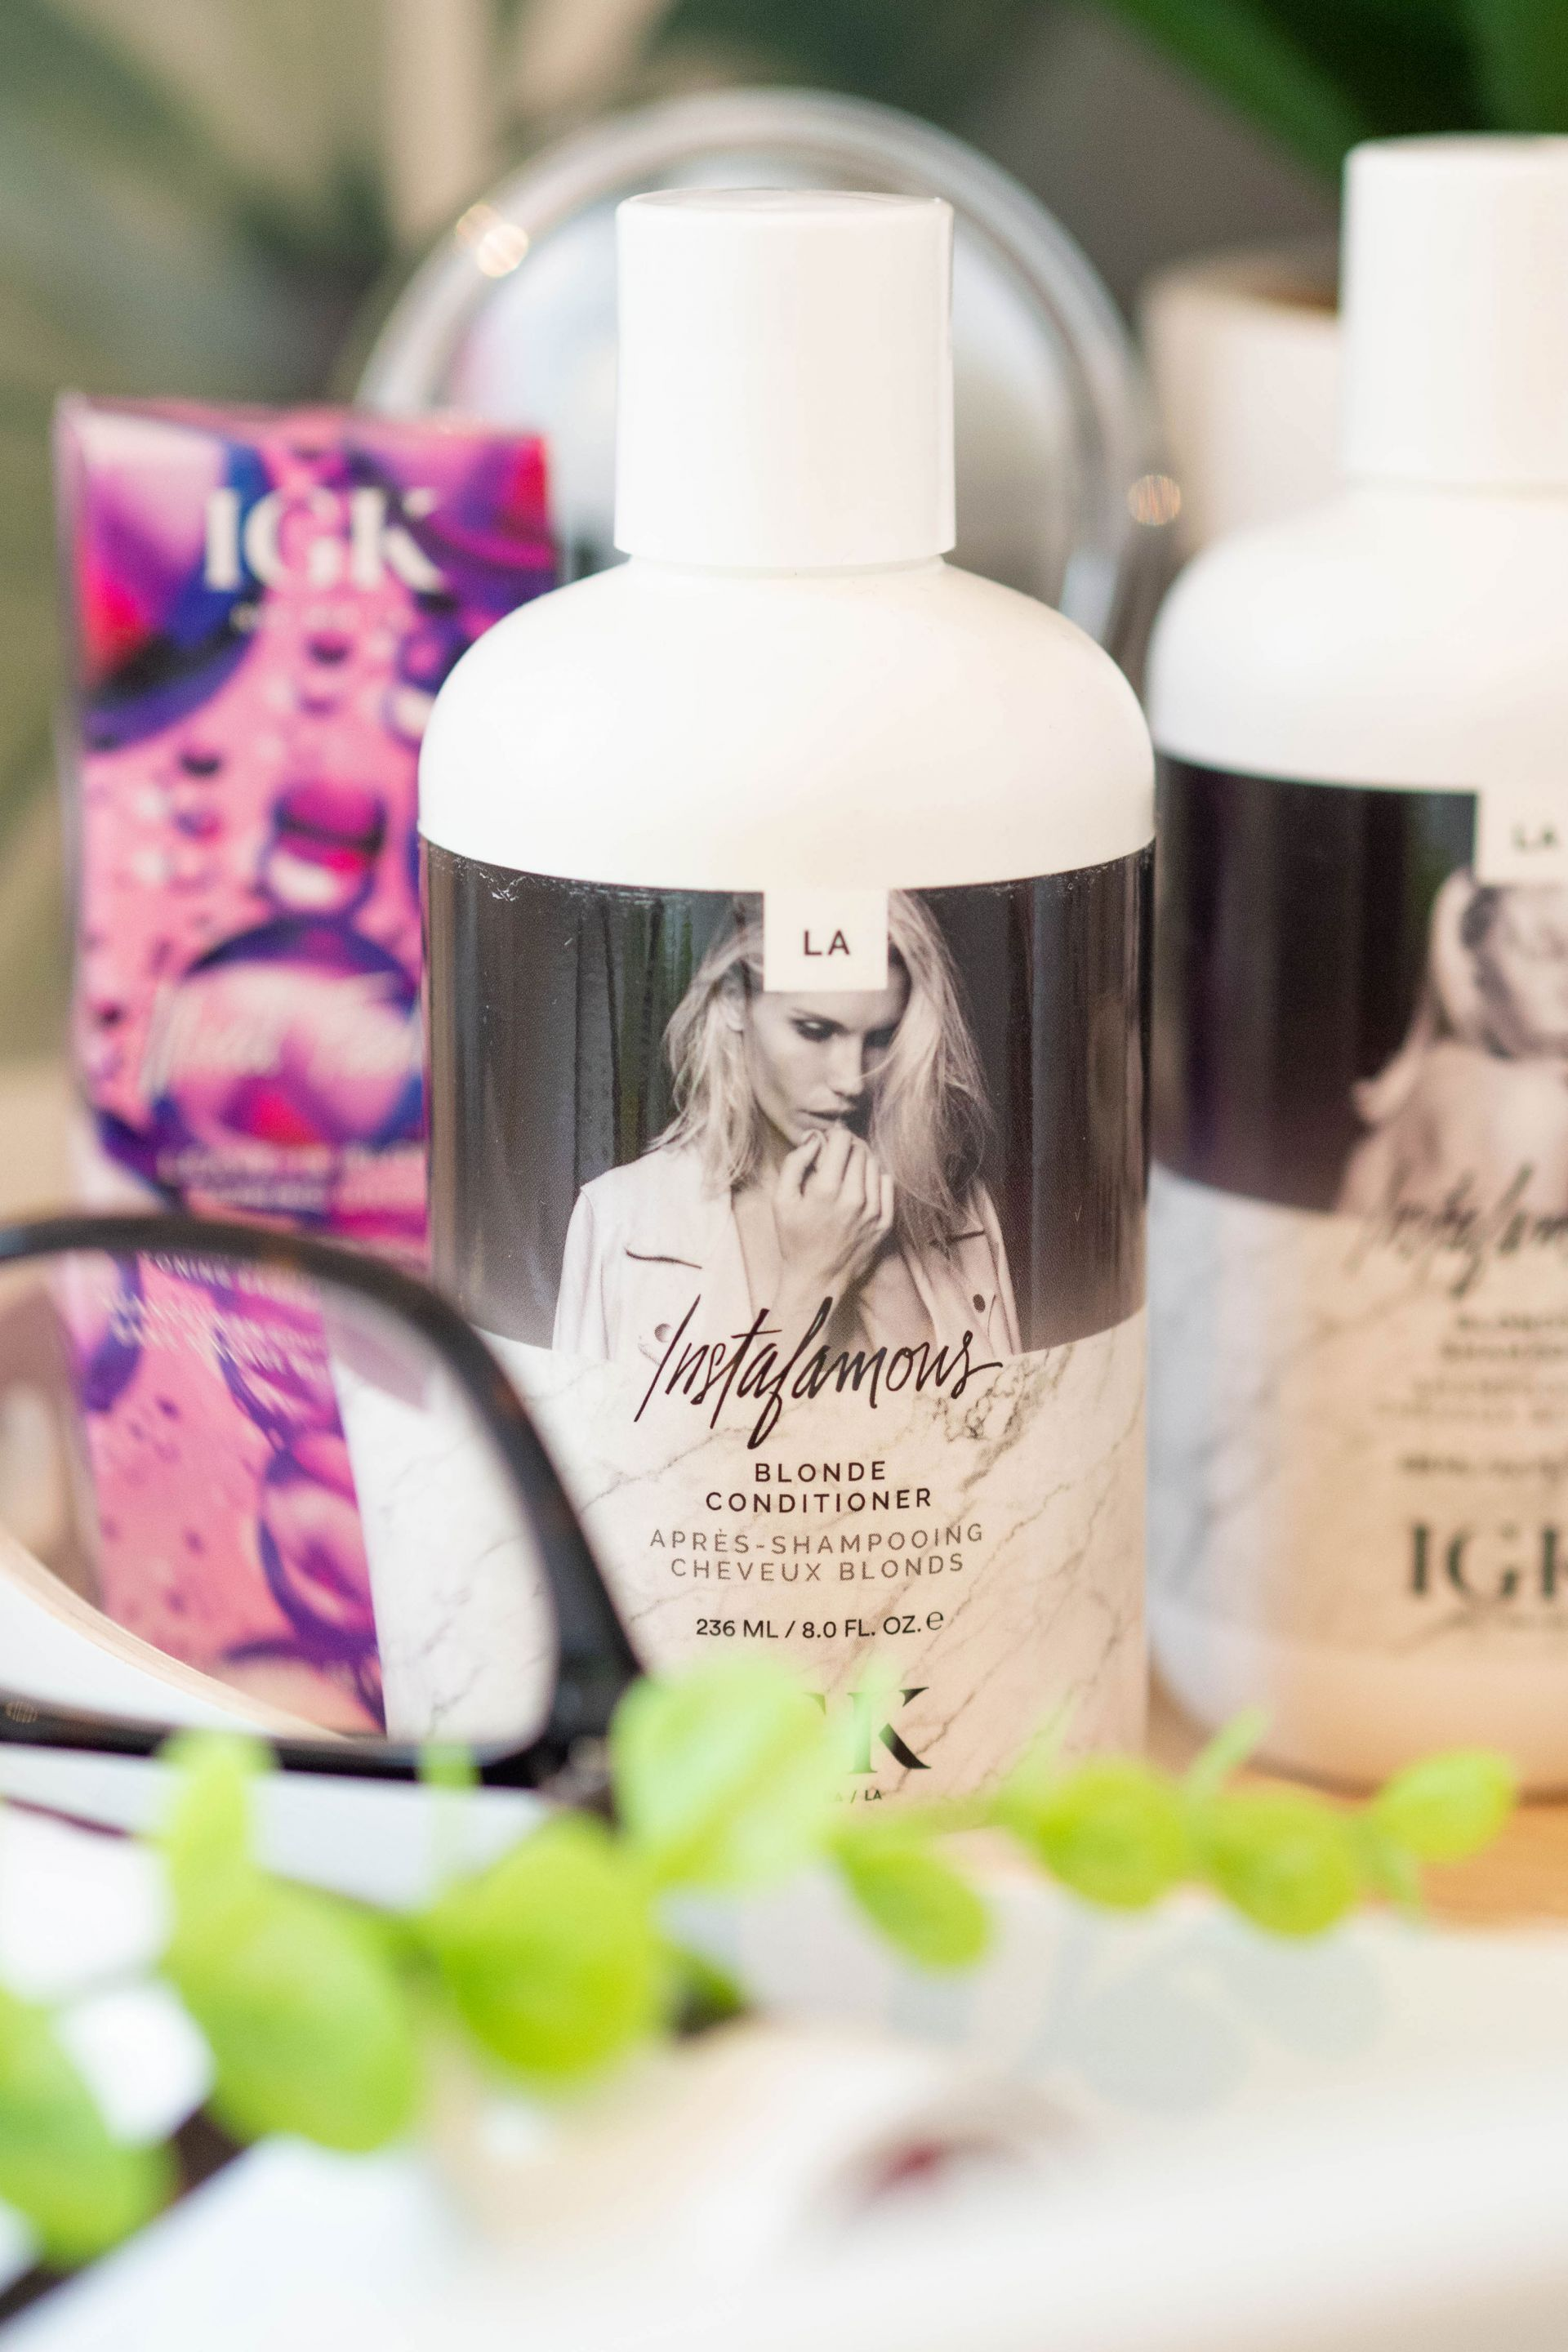 IGK Instafamous Blonde Shampoo & Conditioner for ash blonde hair